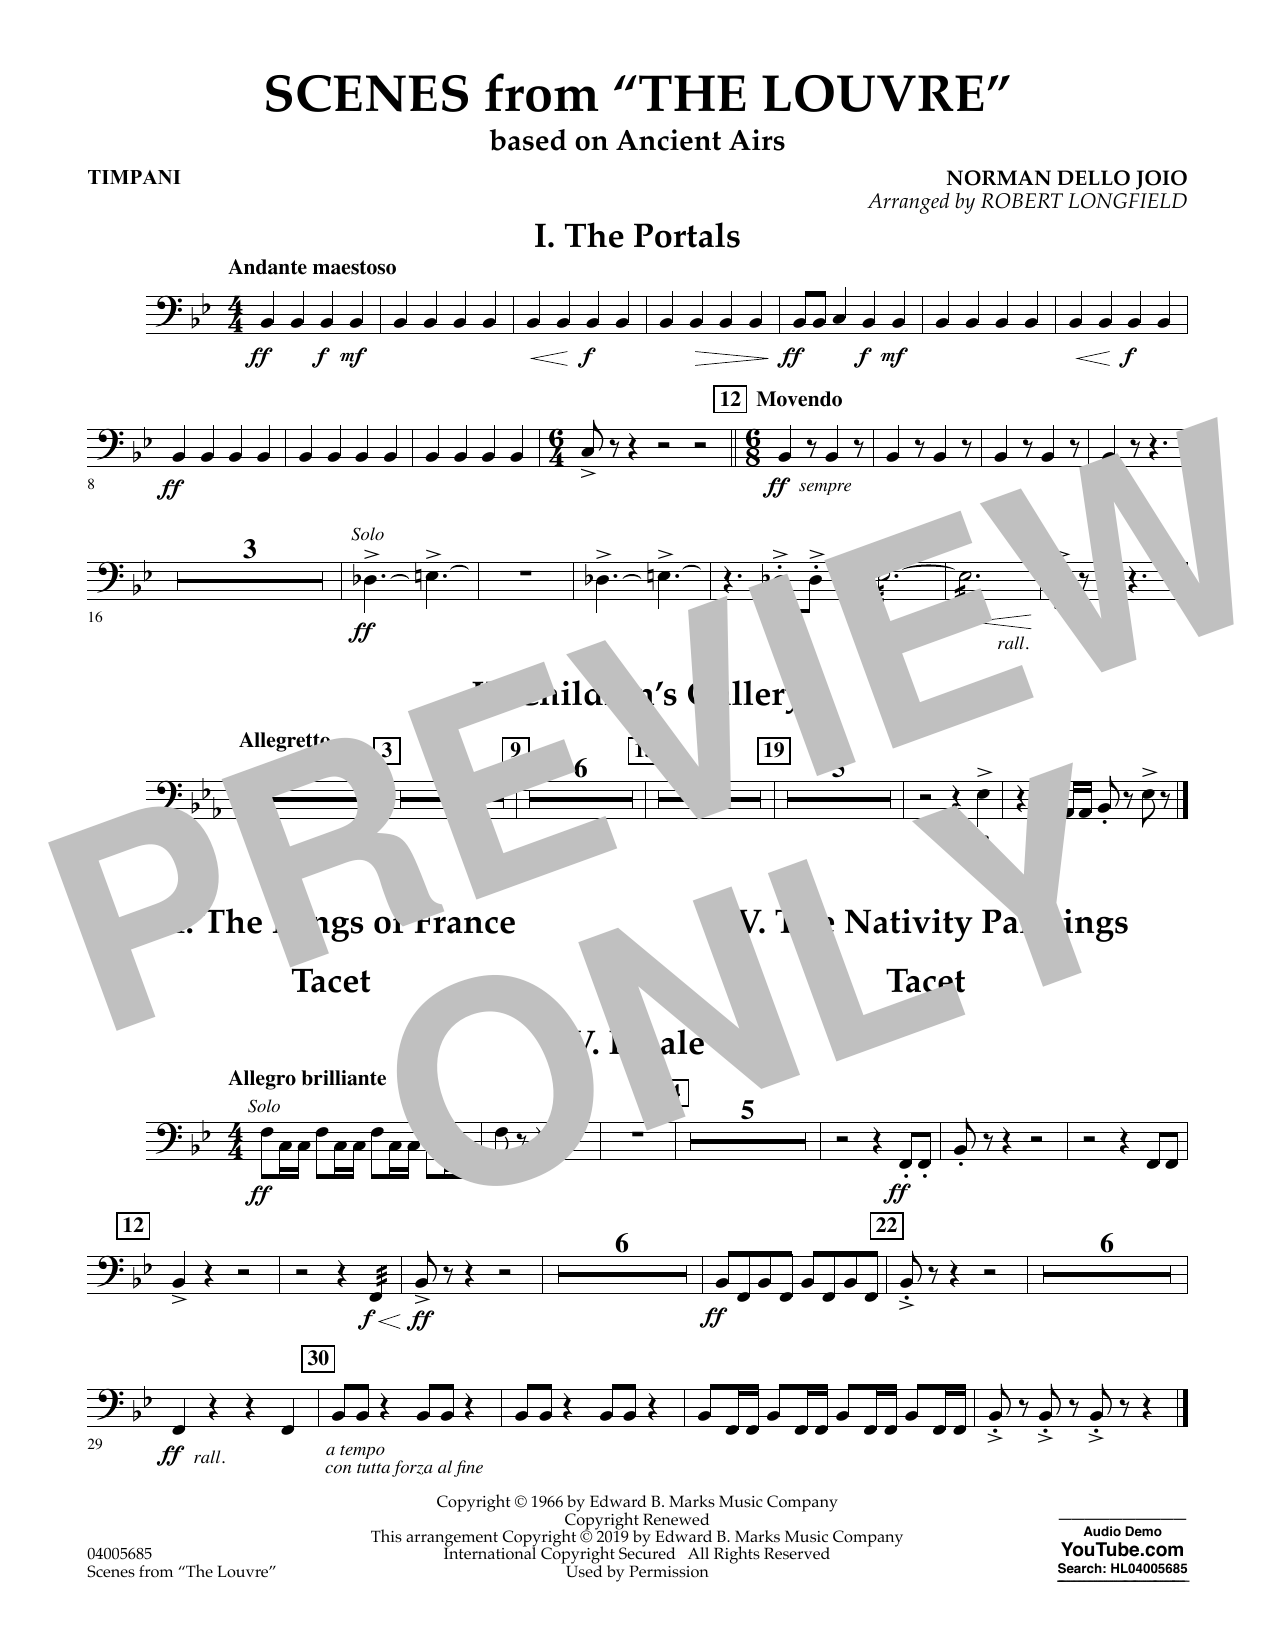 Norman Dello Joio Scenes from the Louvre (arr. Robert Longfield) - Timpani sheet music preview music notes and score for Concert Band including 1 page(s)